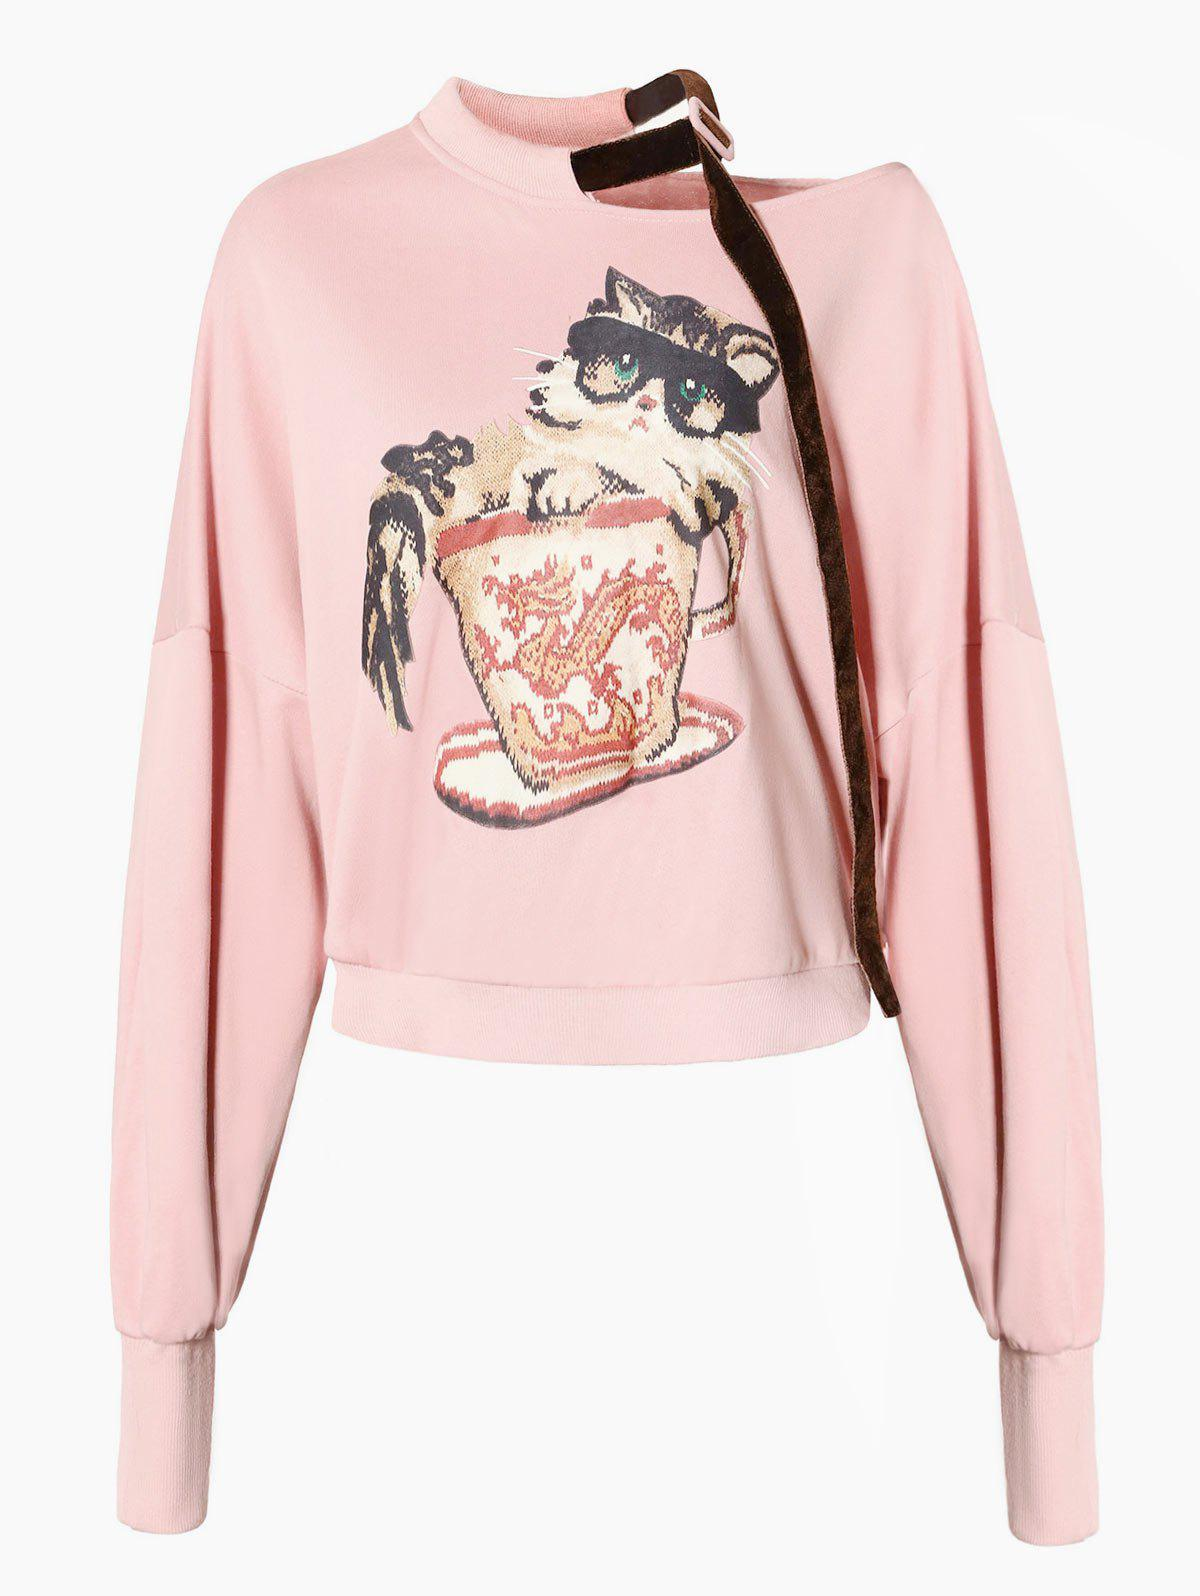 Shop Skew Neck Drop Shoulder Graphic Sweatshirt